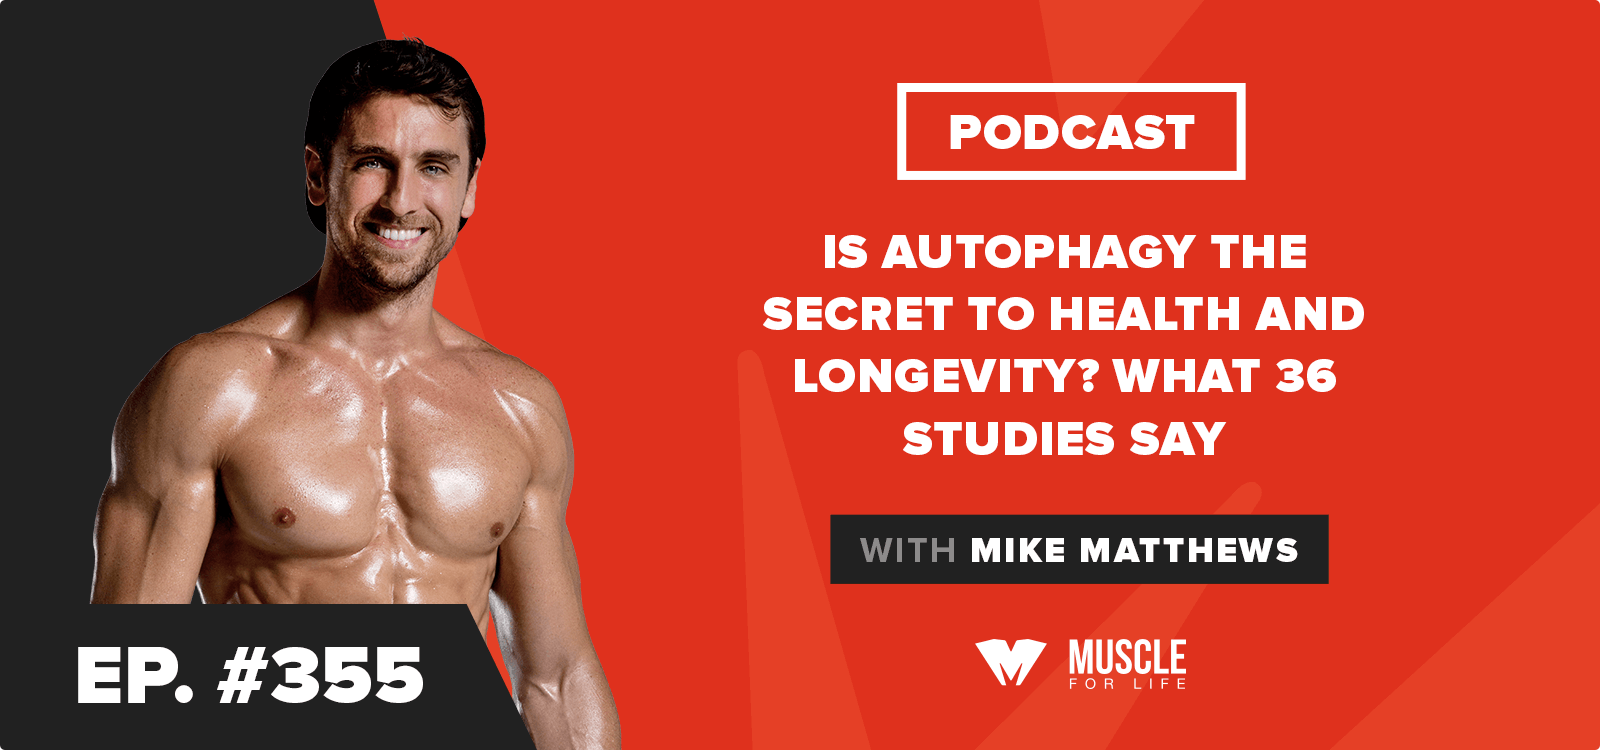 Is Autophagy the Secret to Health and Longevity? What 36 Studies Say